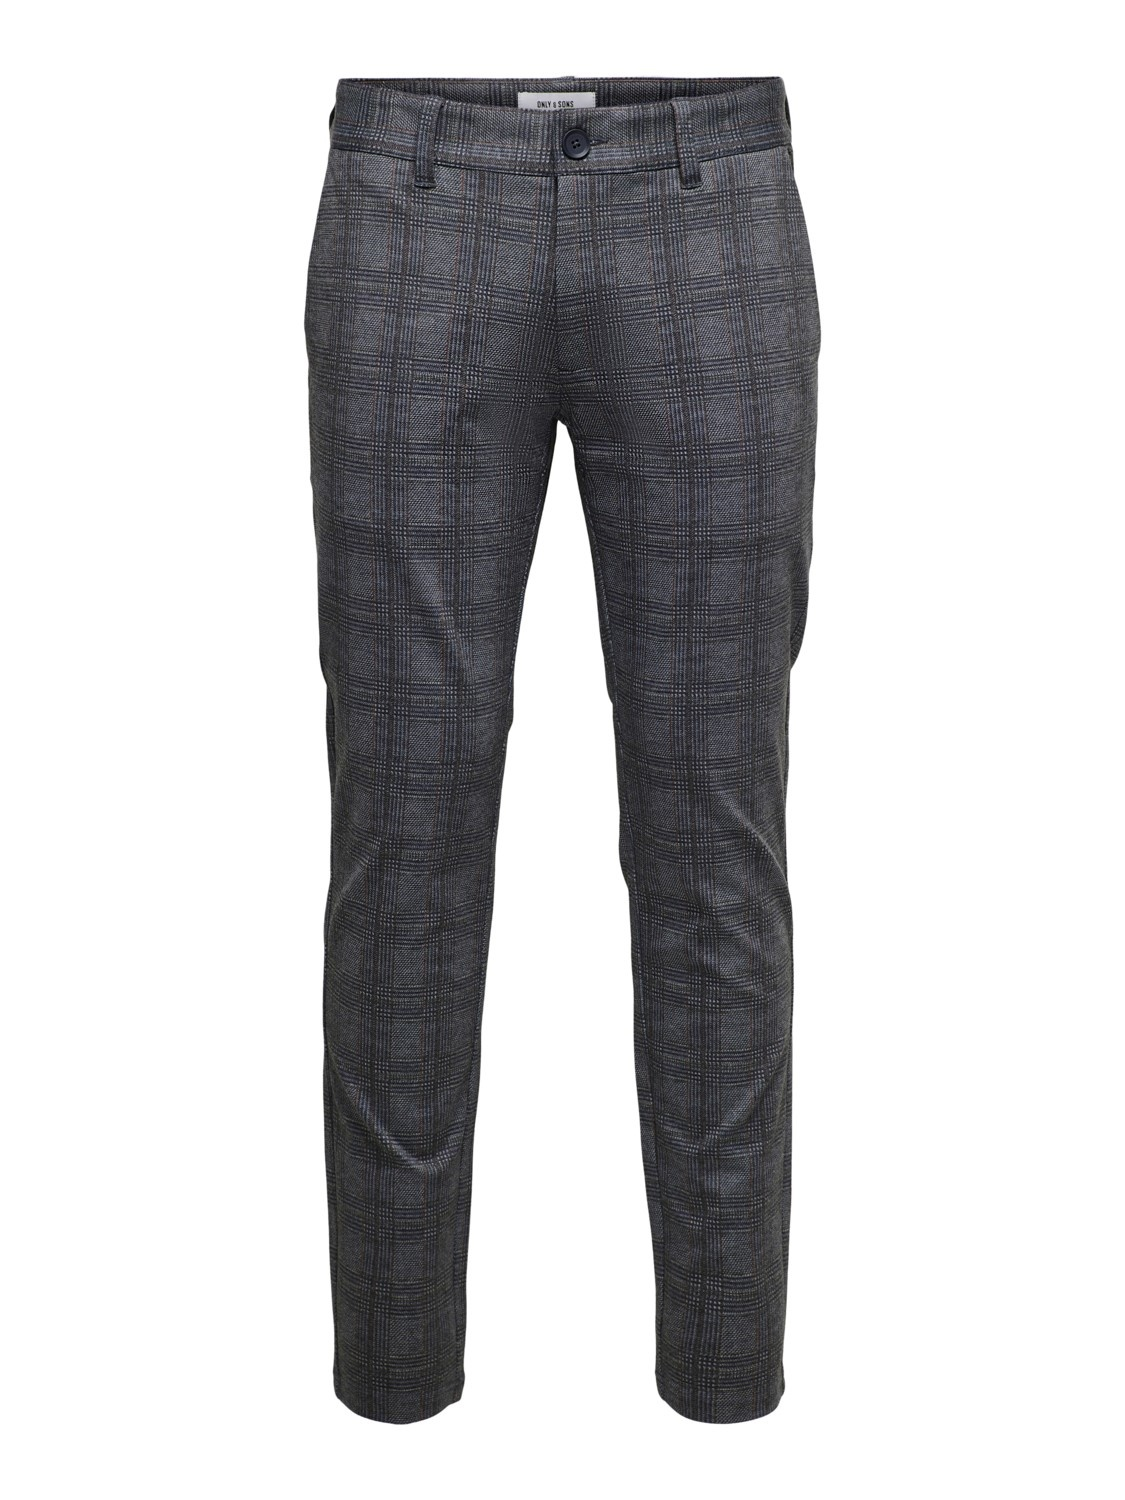 Only & Sons Onsmark Tap Pant Check 8649 Noos